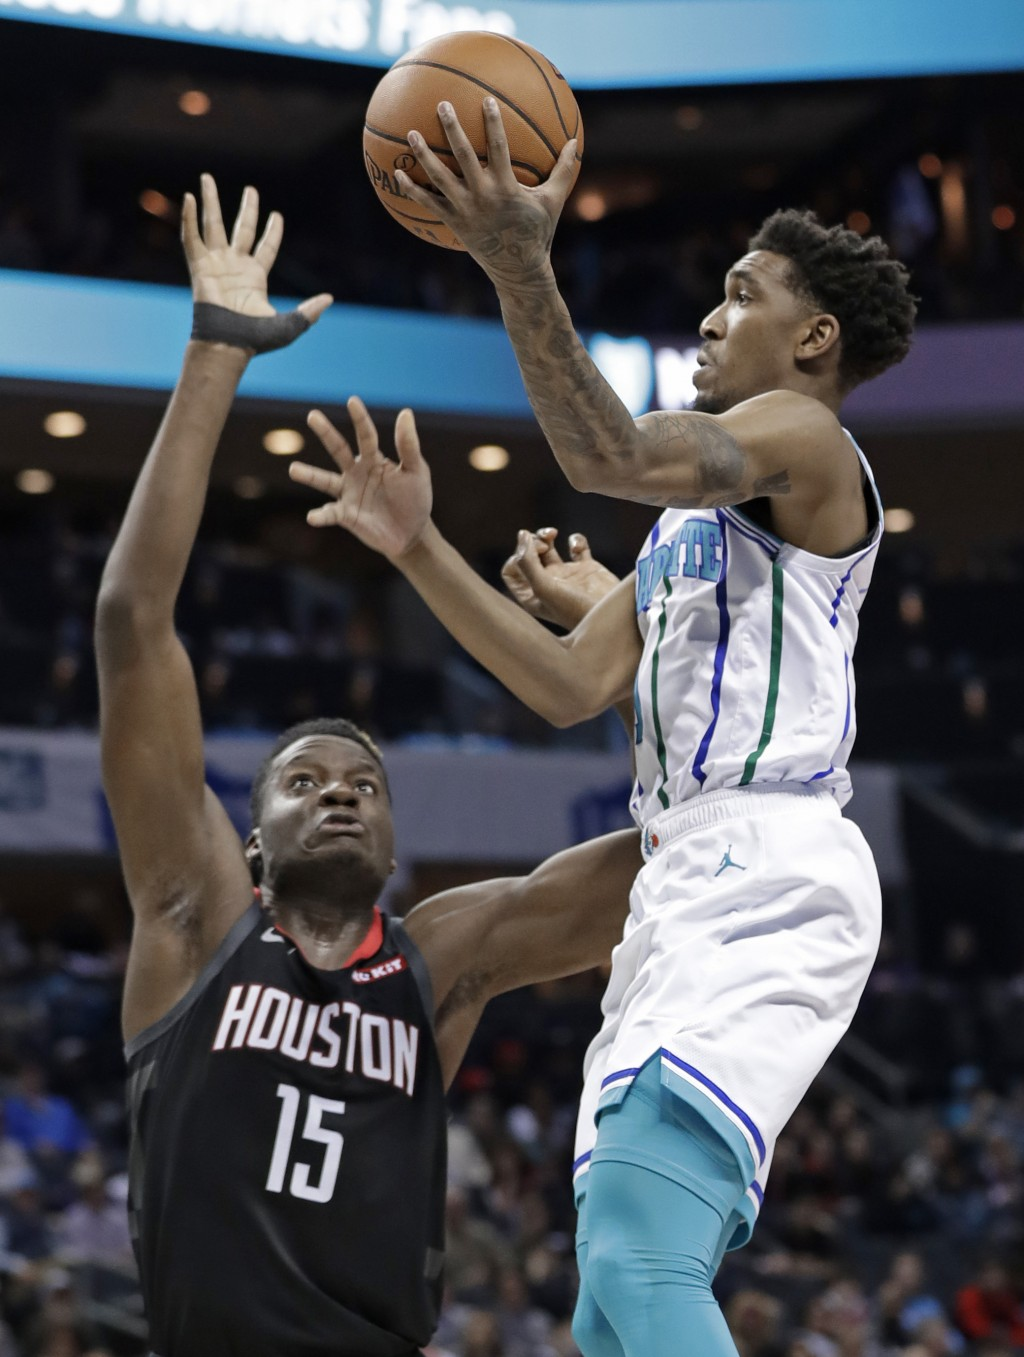 Charlotte Hornets' Malik Monk, right, shoots against Houston Rockets' Clint Capela, left, during the first half of an NBA basketball game in Charlotte